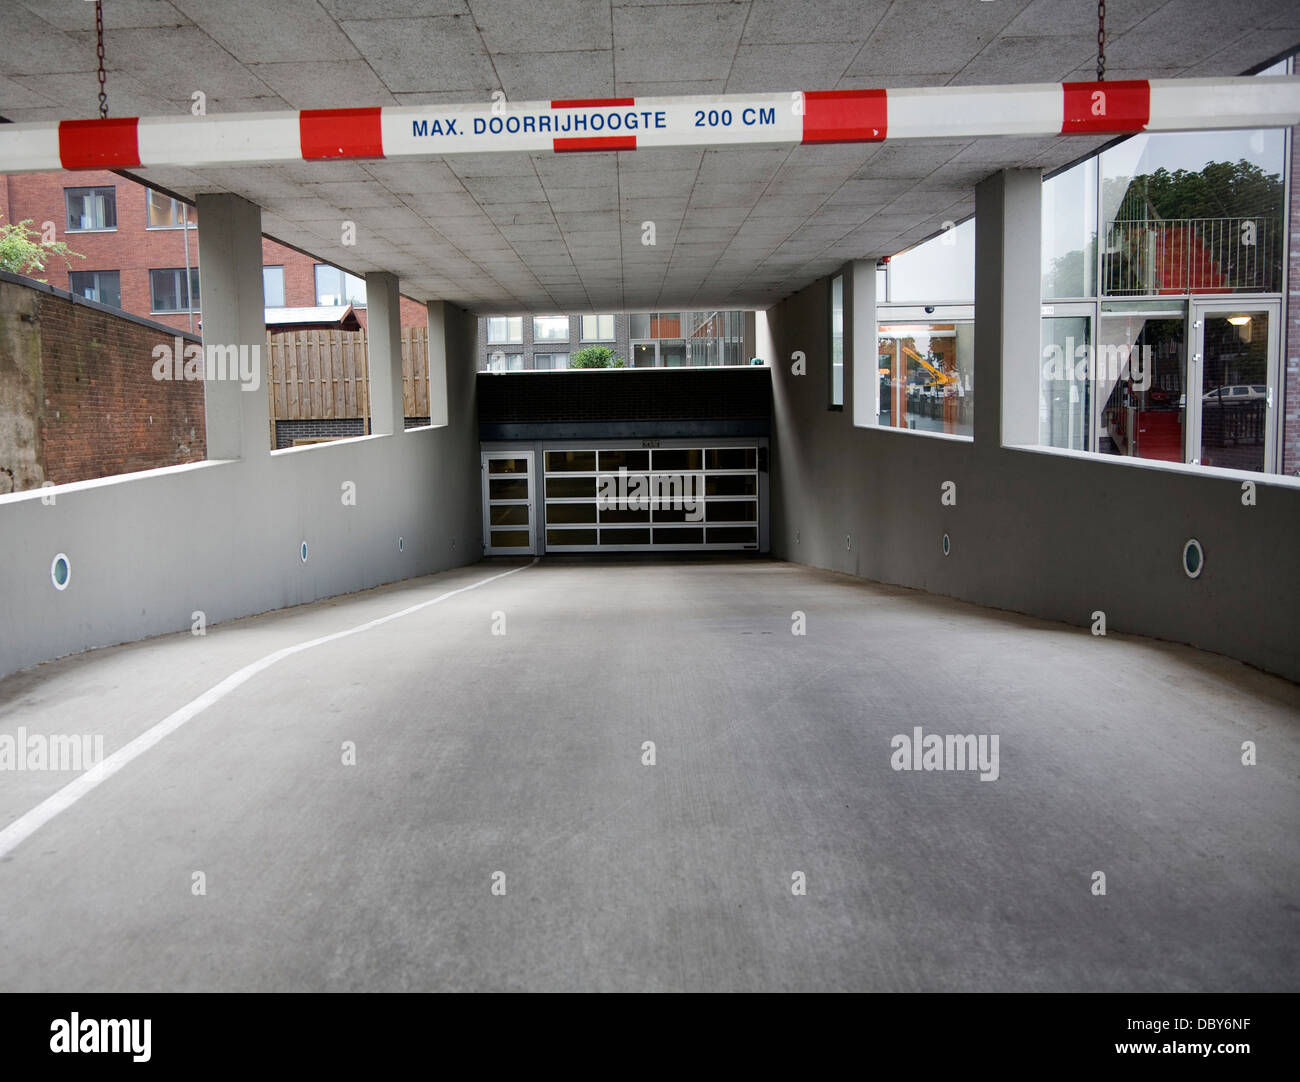 Car park entrance height barrier security gate Dordrecht, Netherlands - Stock Image